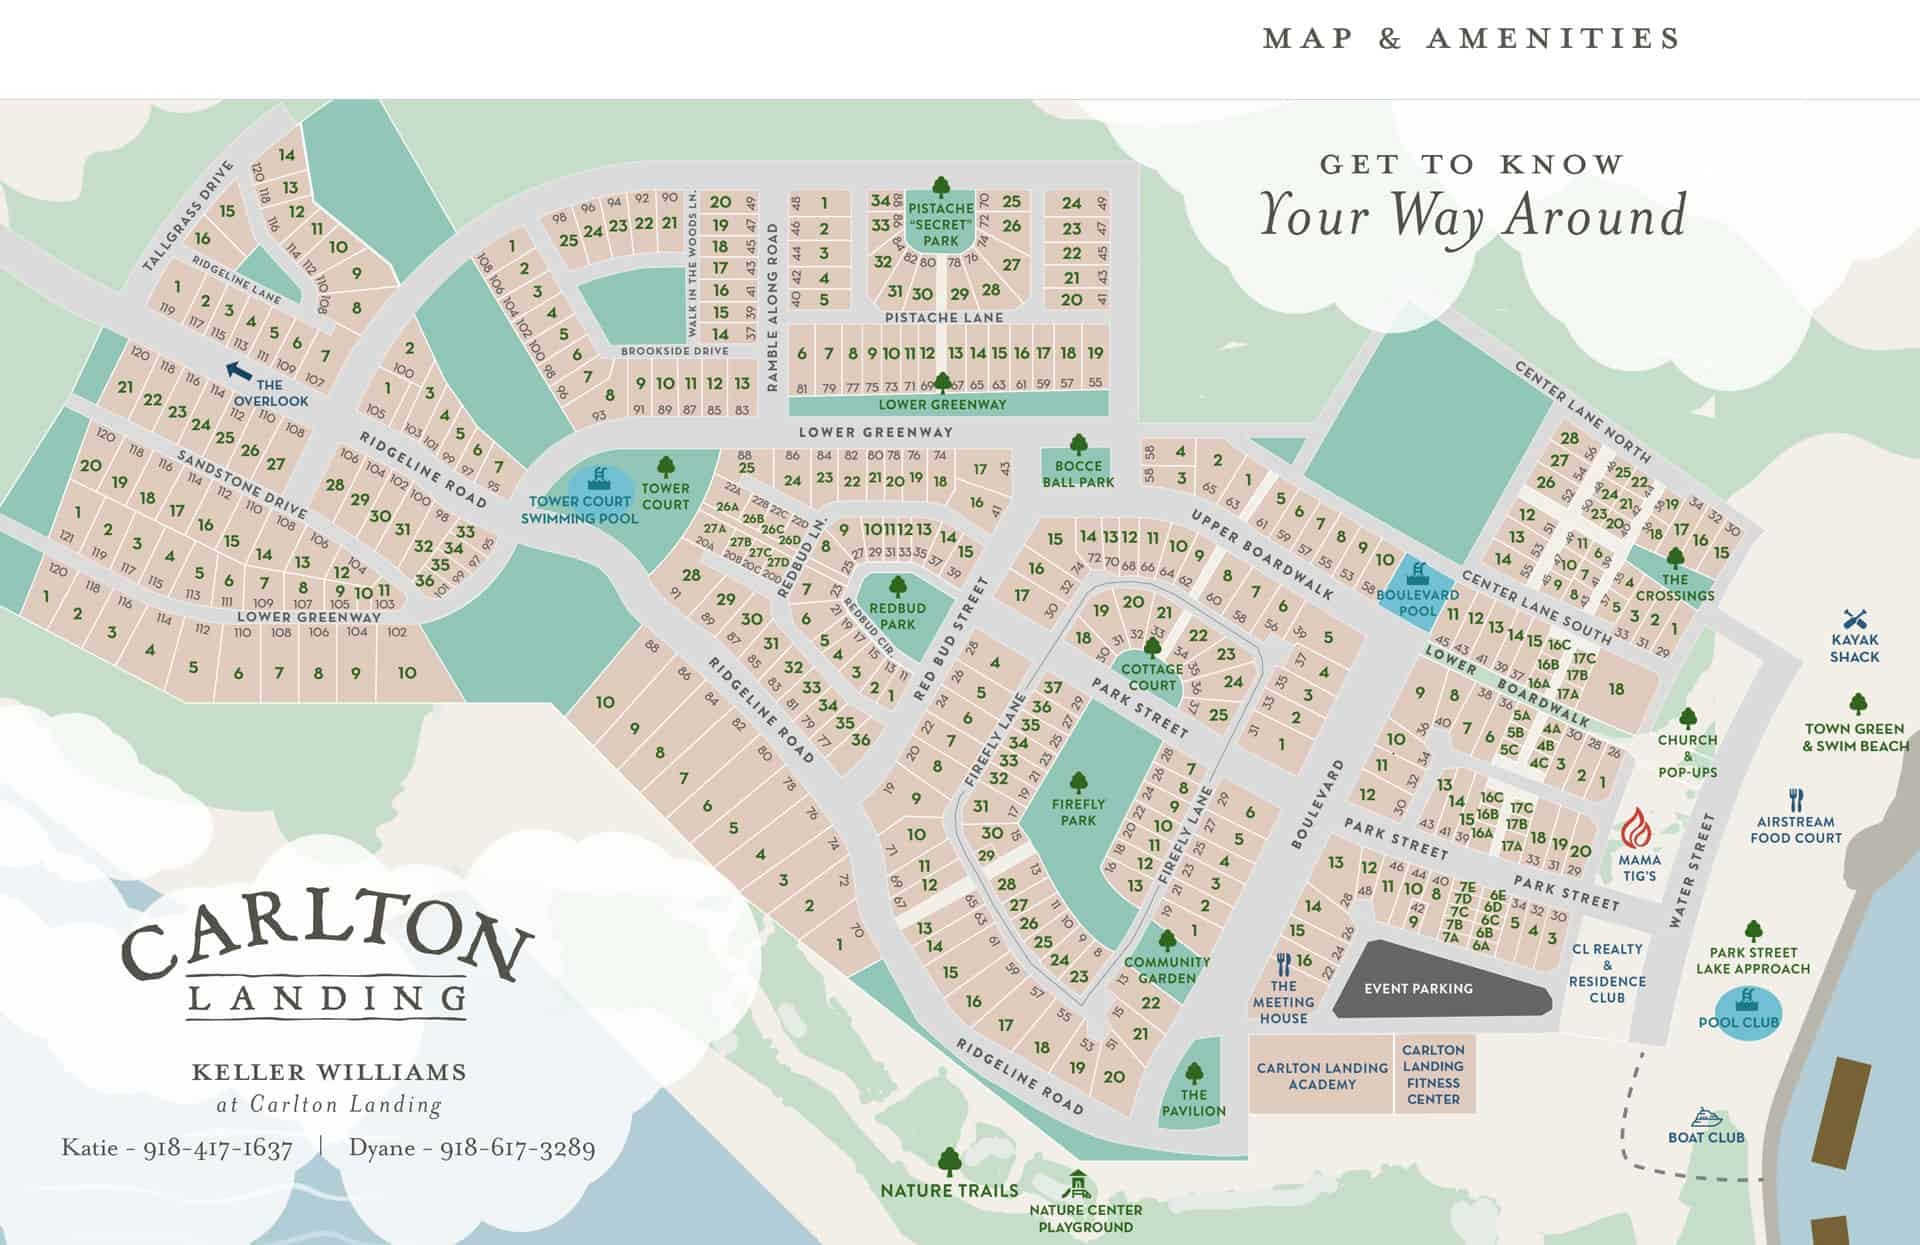 Carlton Landing Map of Amenities